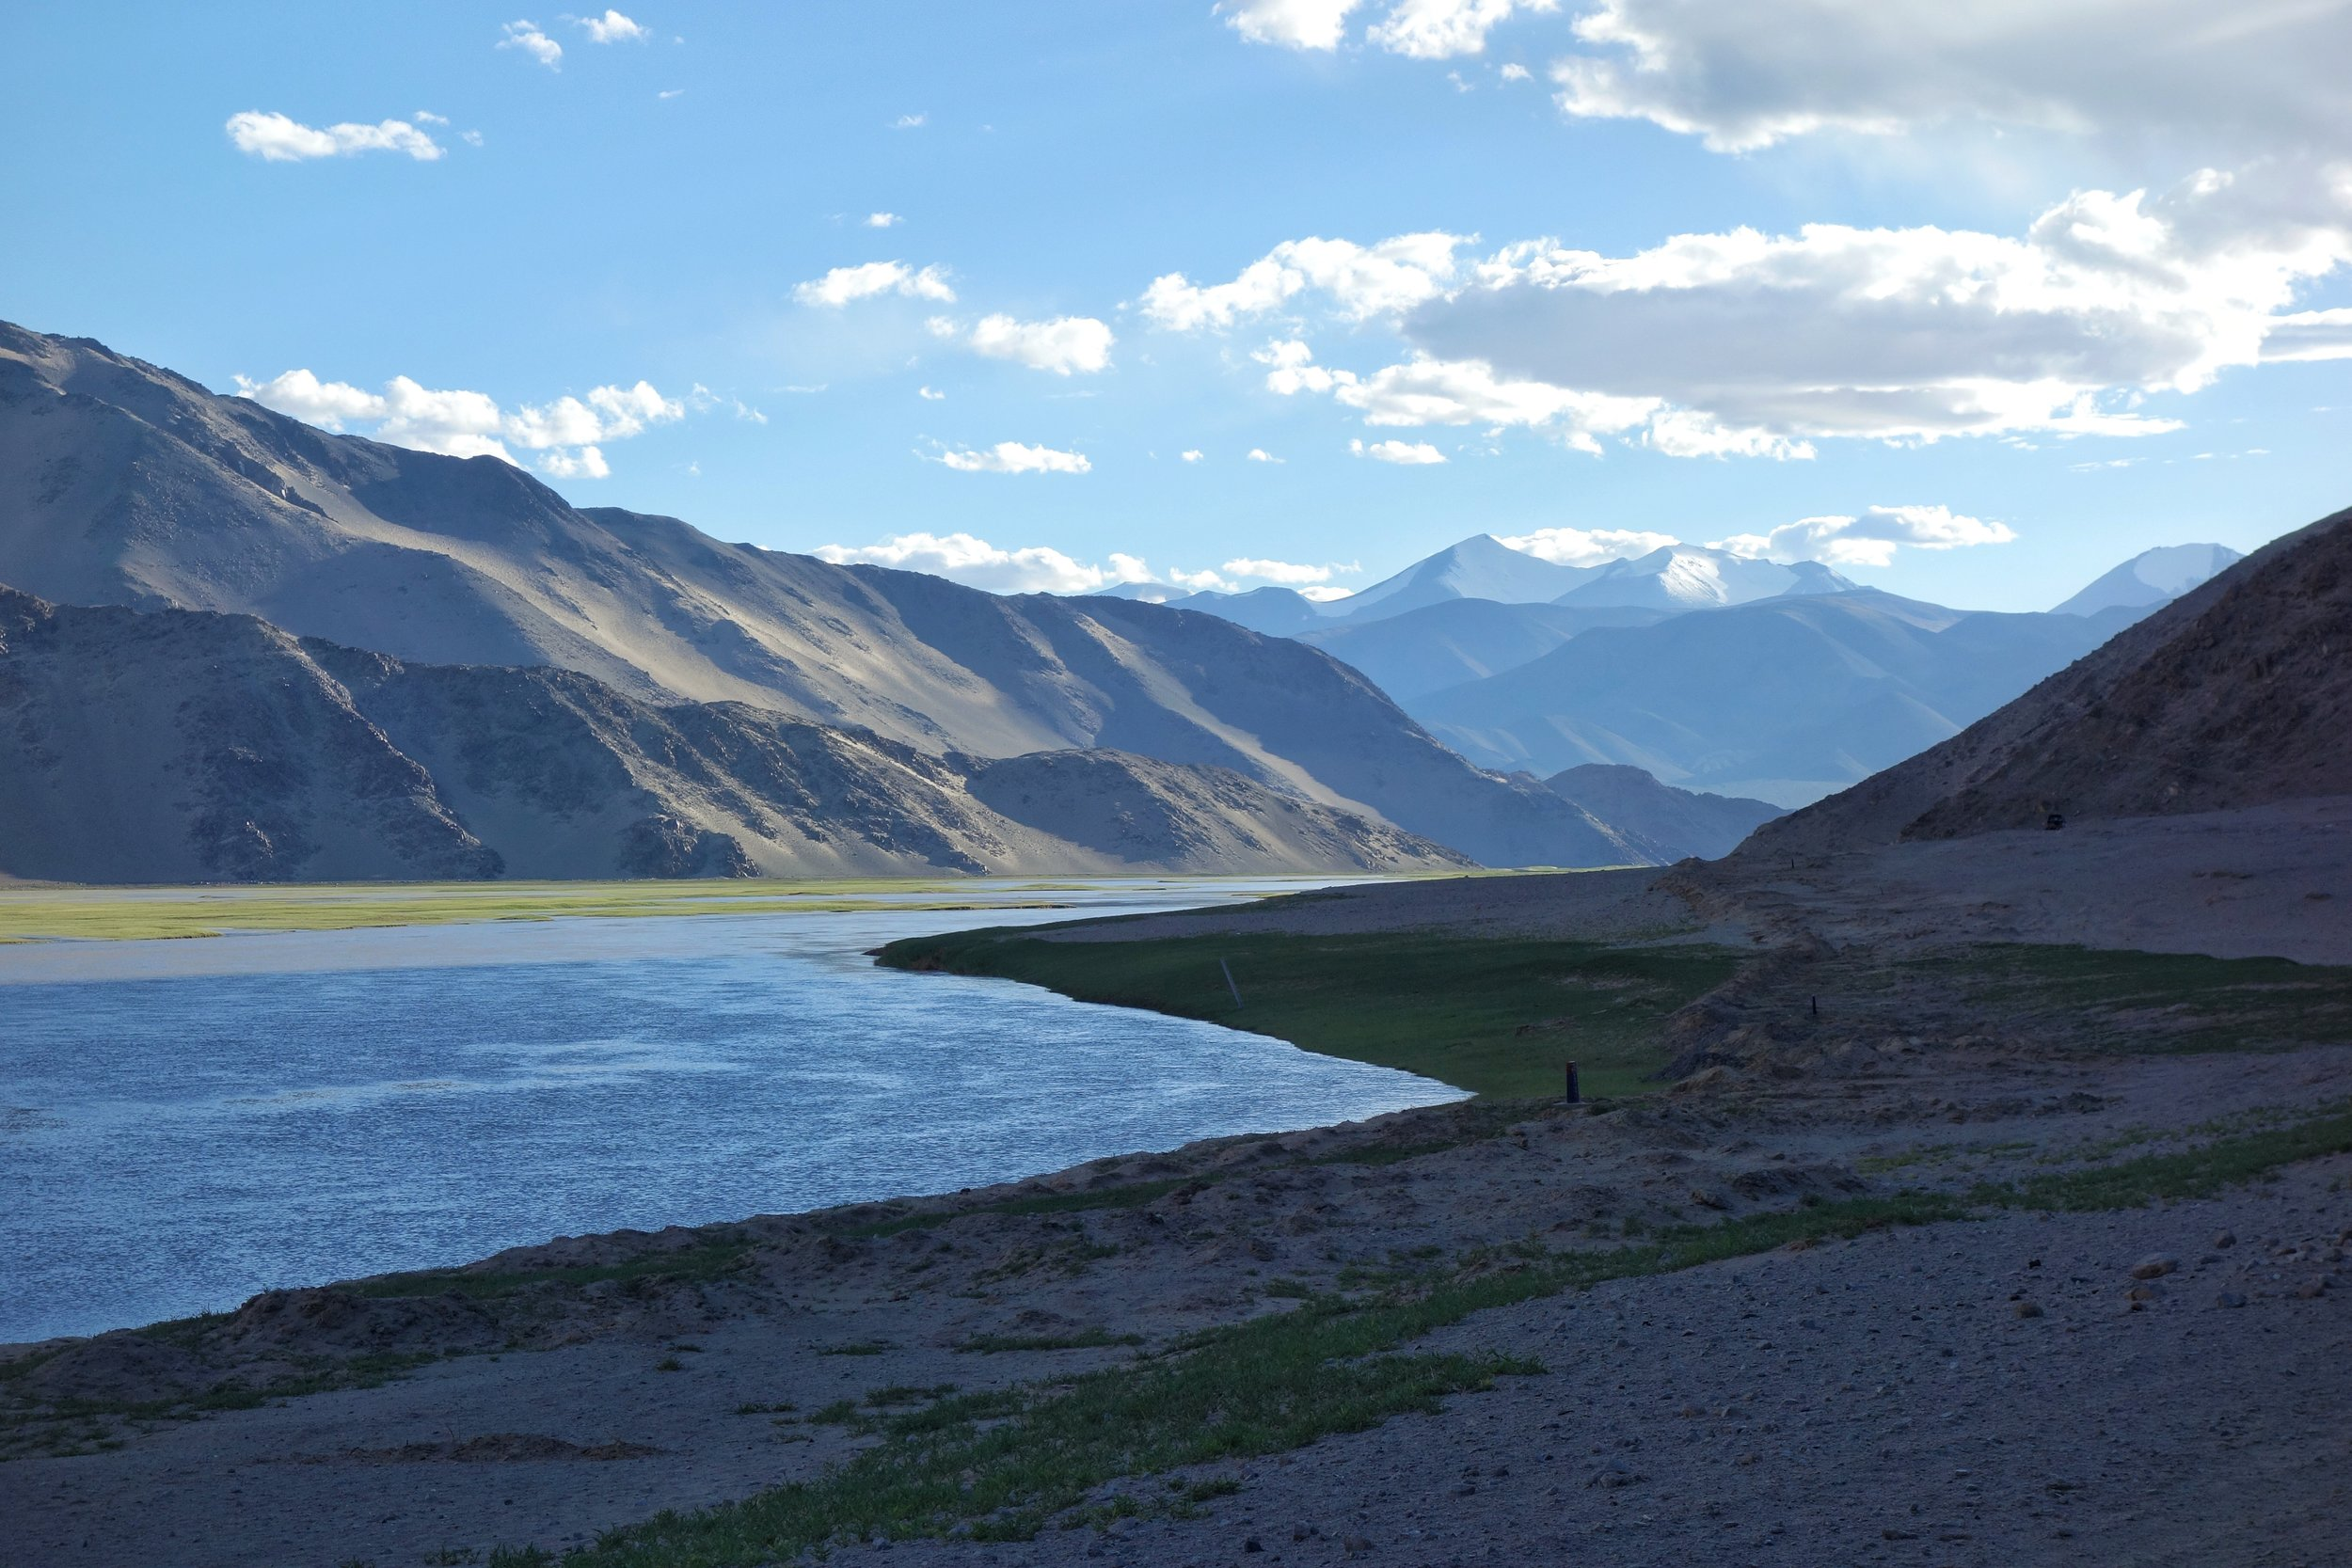 The Indus after it enters Ladakh from Tibet on the Chnagthang